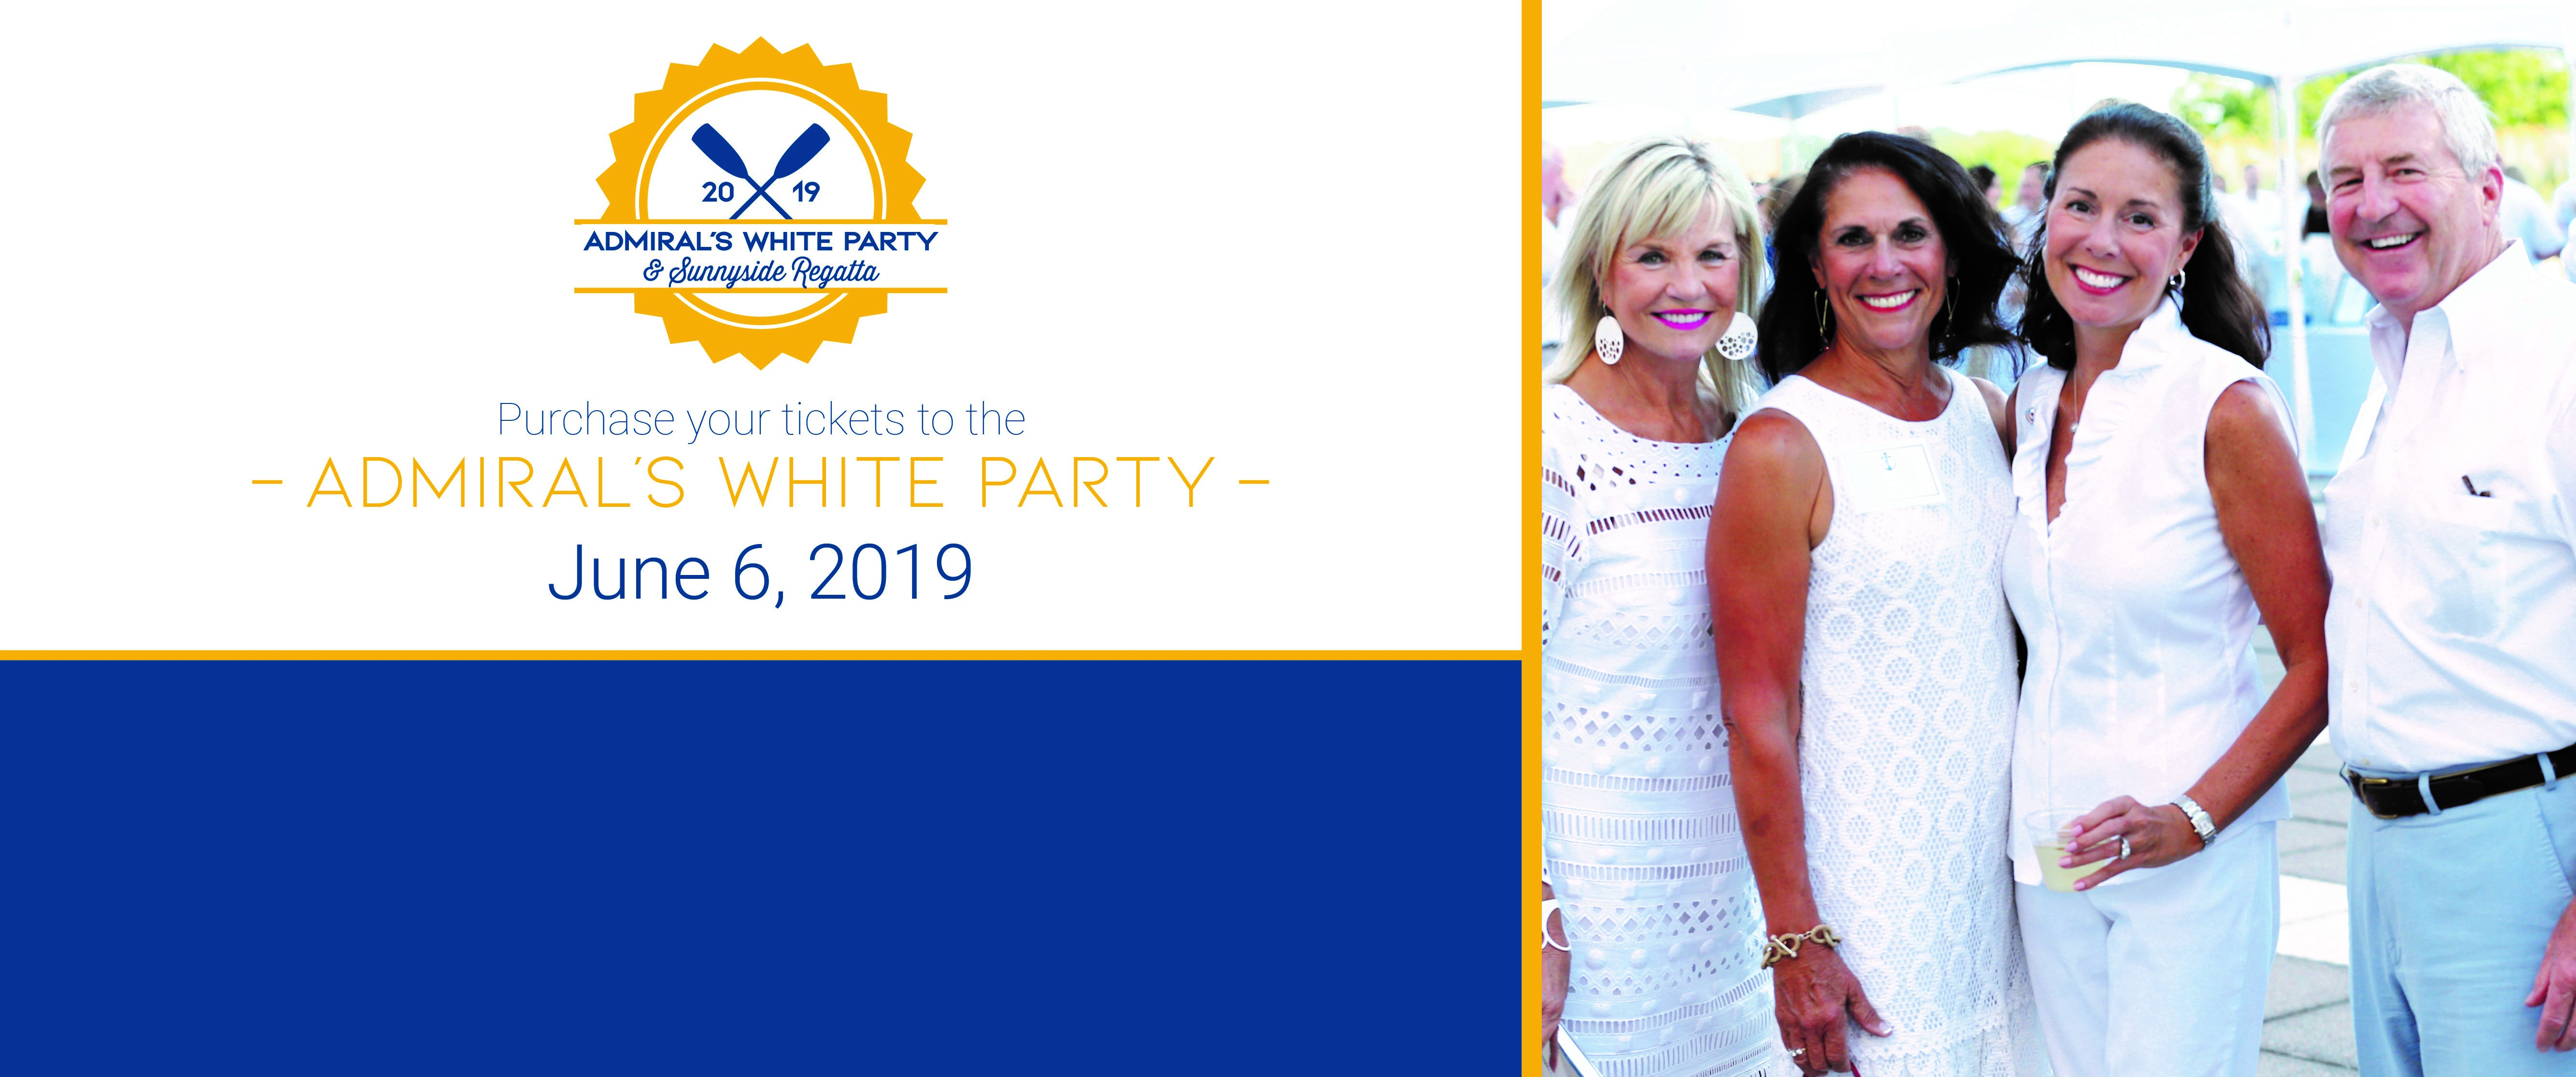 Gala 2019 Tickets Available